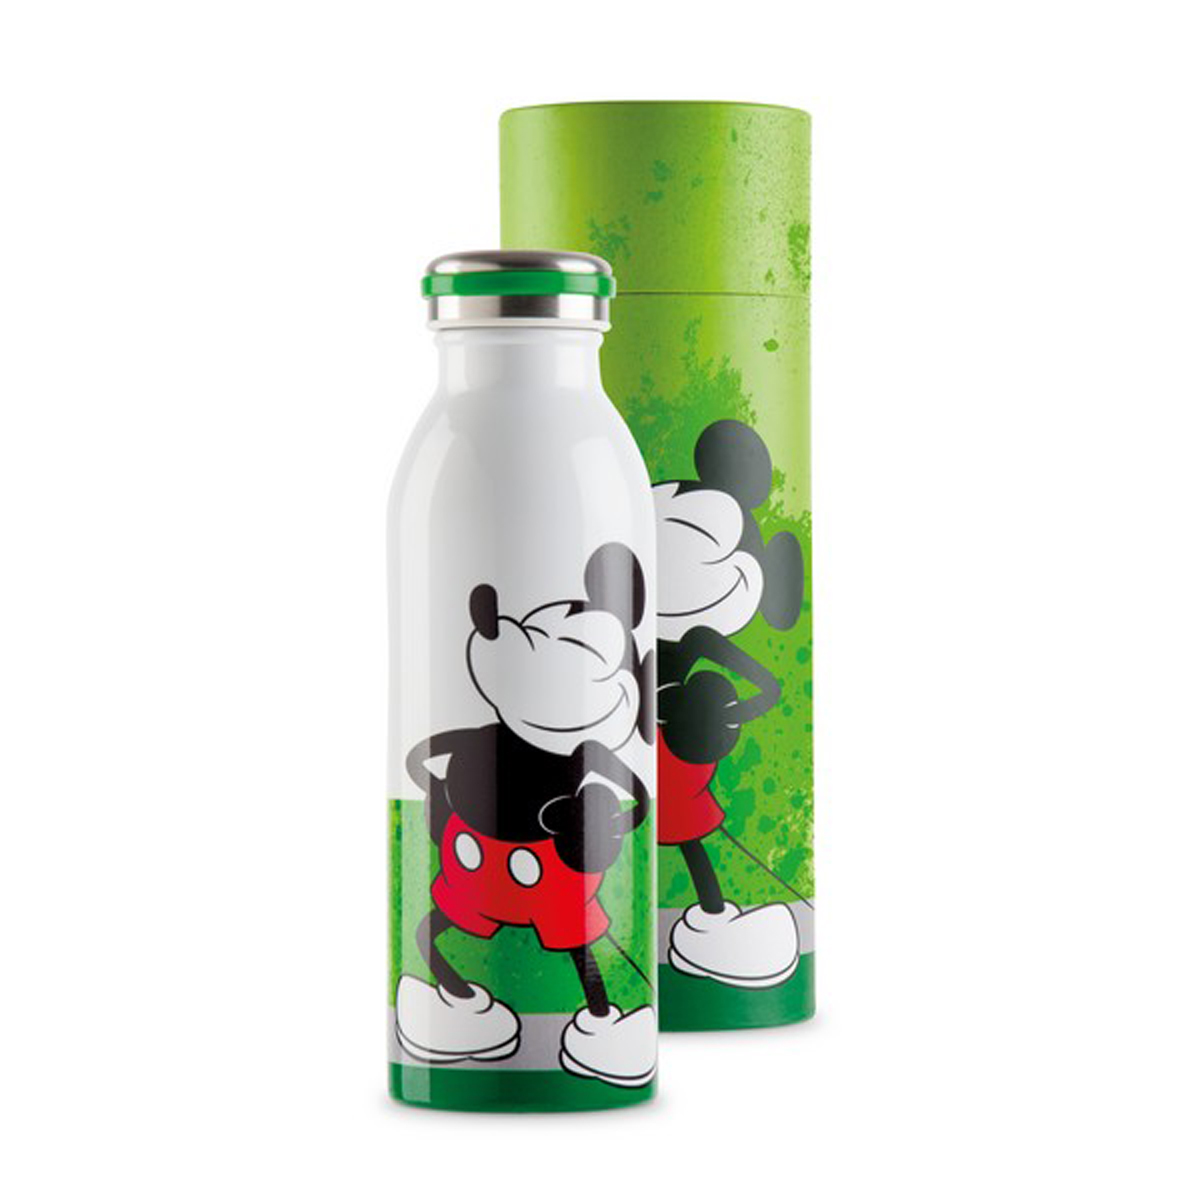 Bouteille isotherme \'Mickey\' vert - 21x7 cm (500 ml) - [A2948]